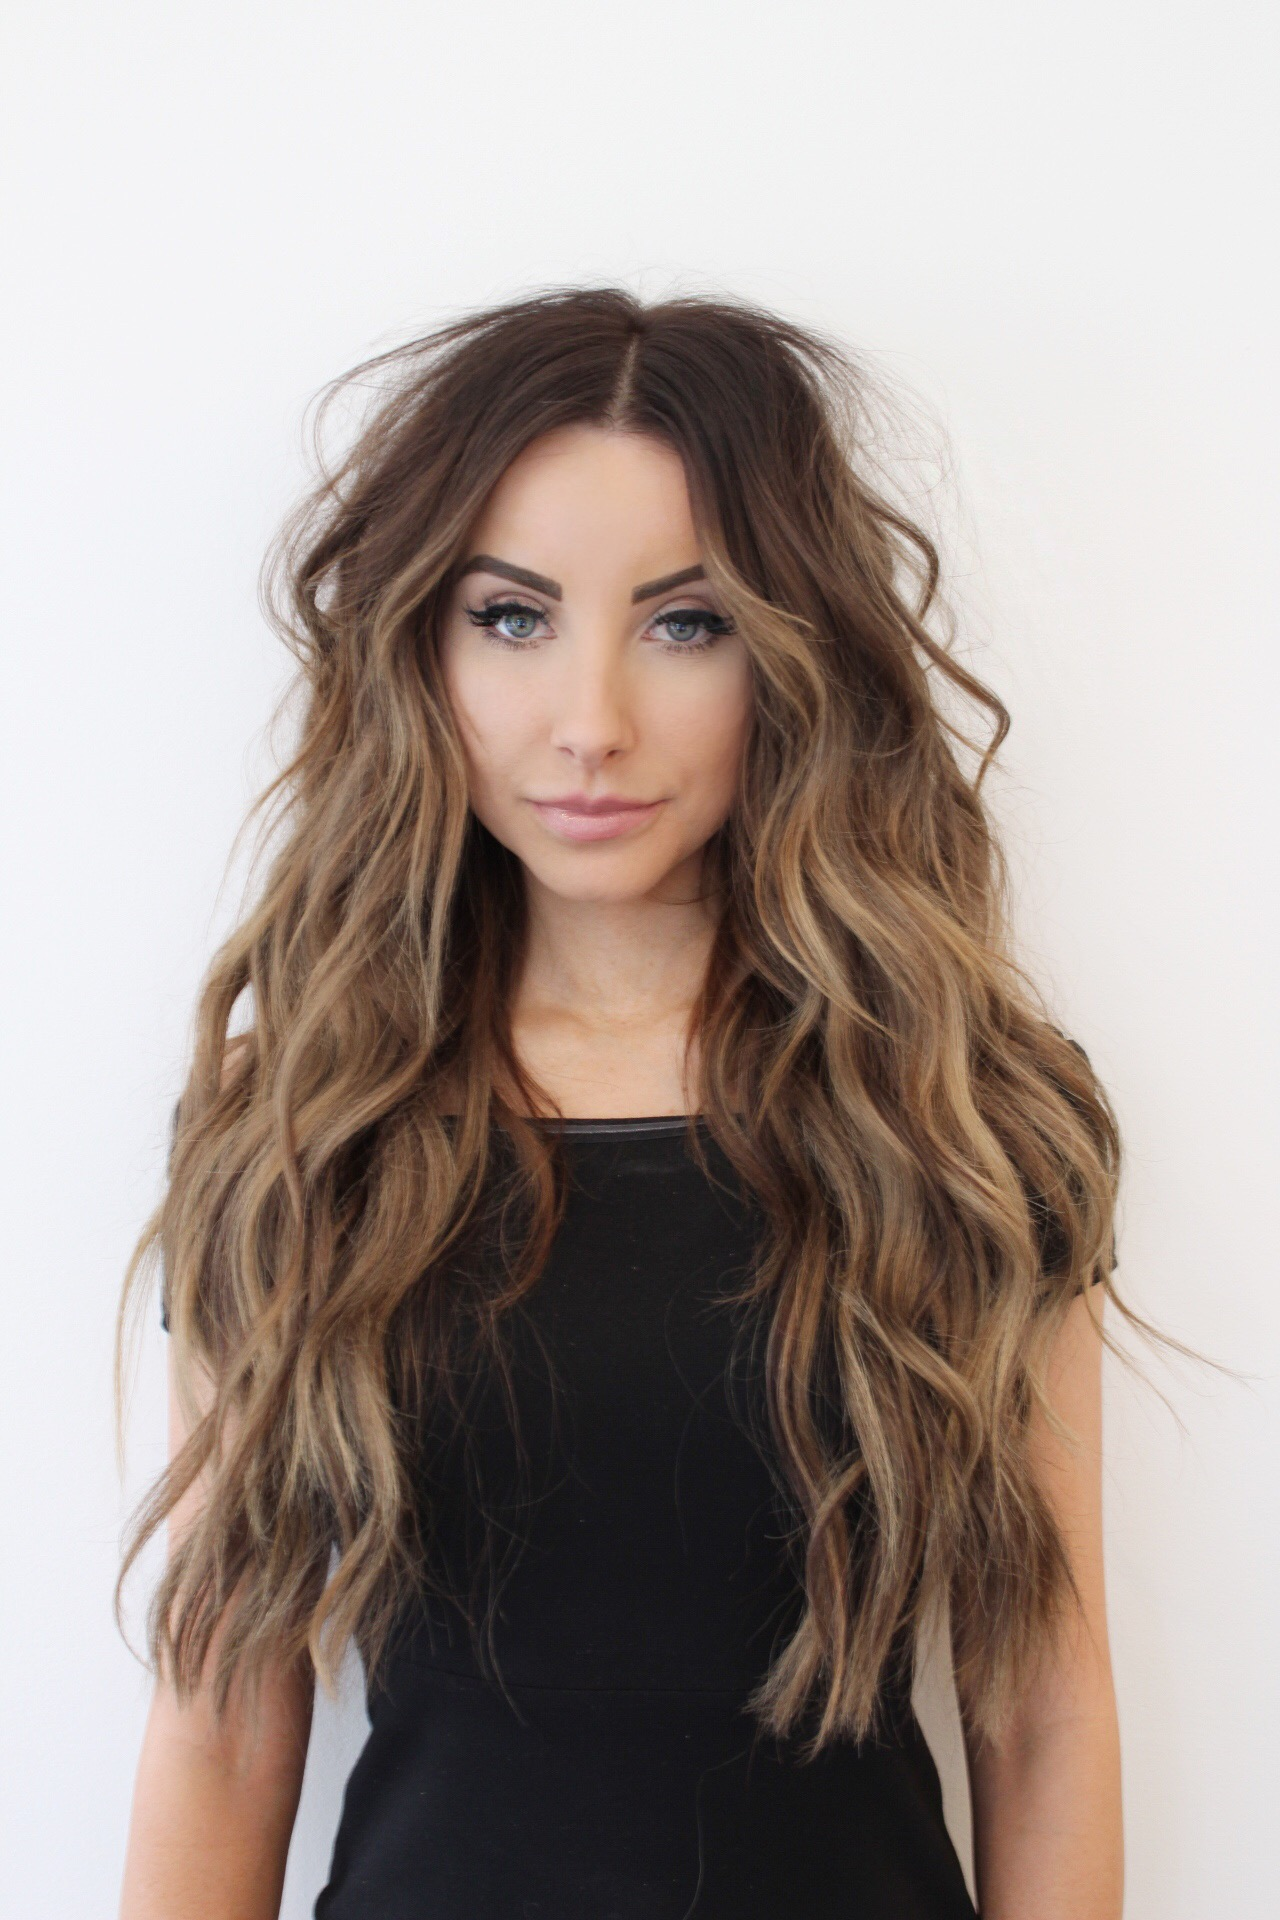 NBR Hair Extension with Beach Waves